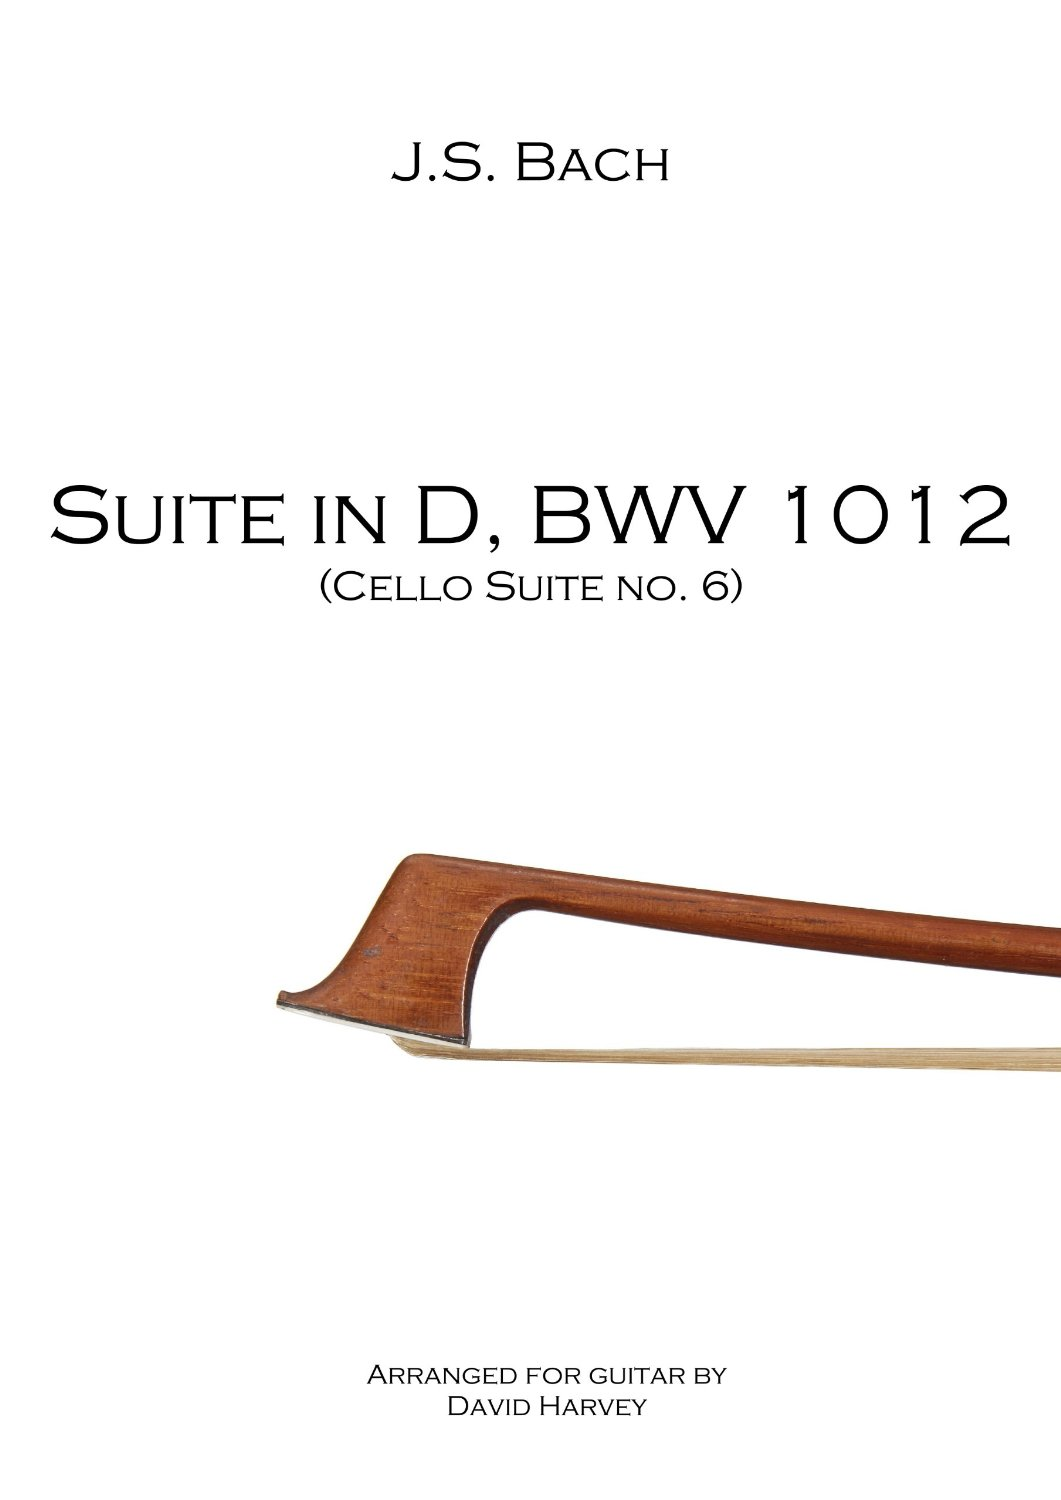 Suite in D, BWV 1012 (6th Cello Suite) - cover